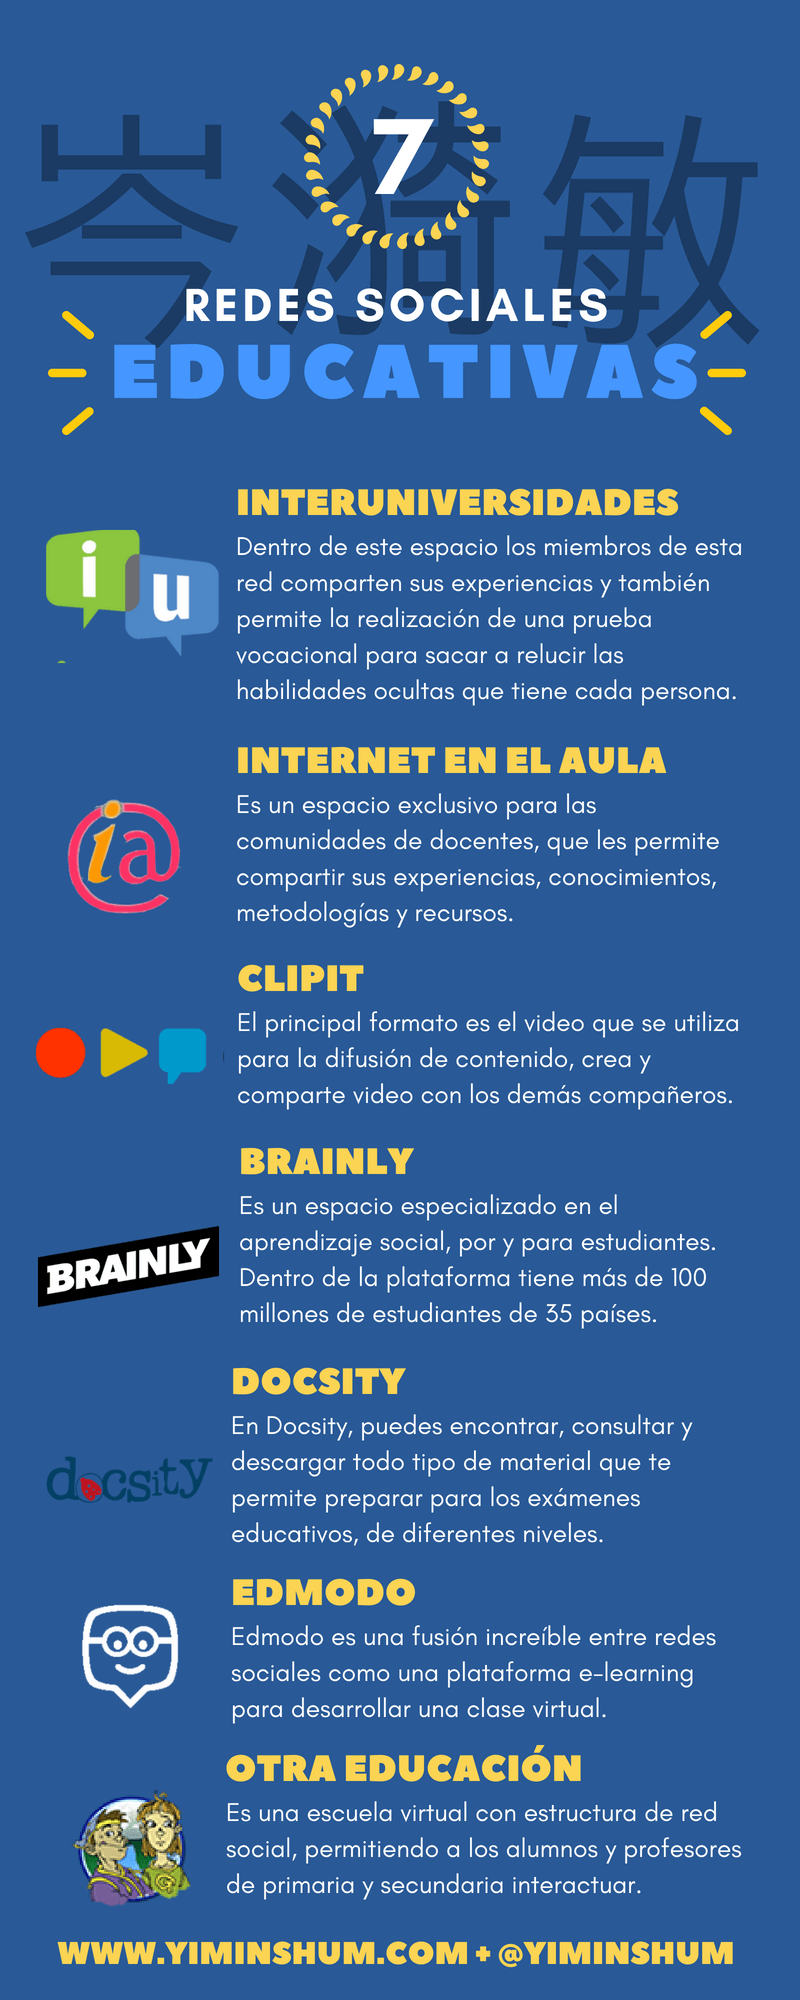 7 redes sociales educativas